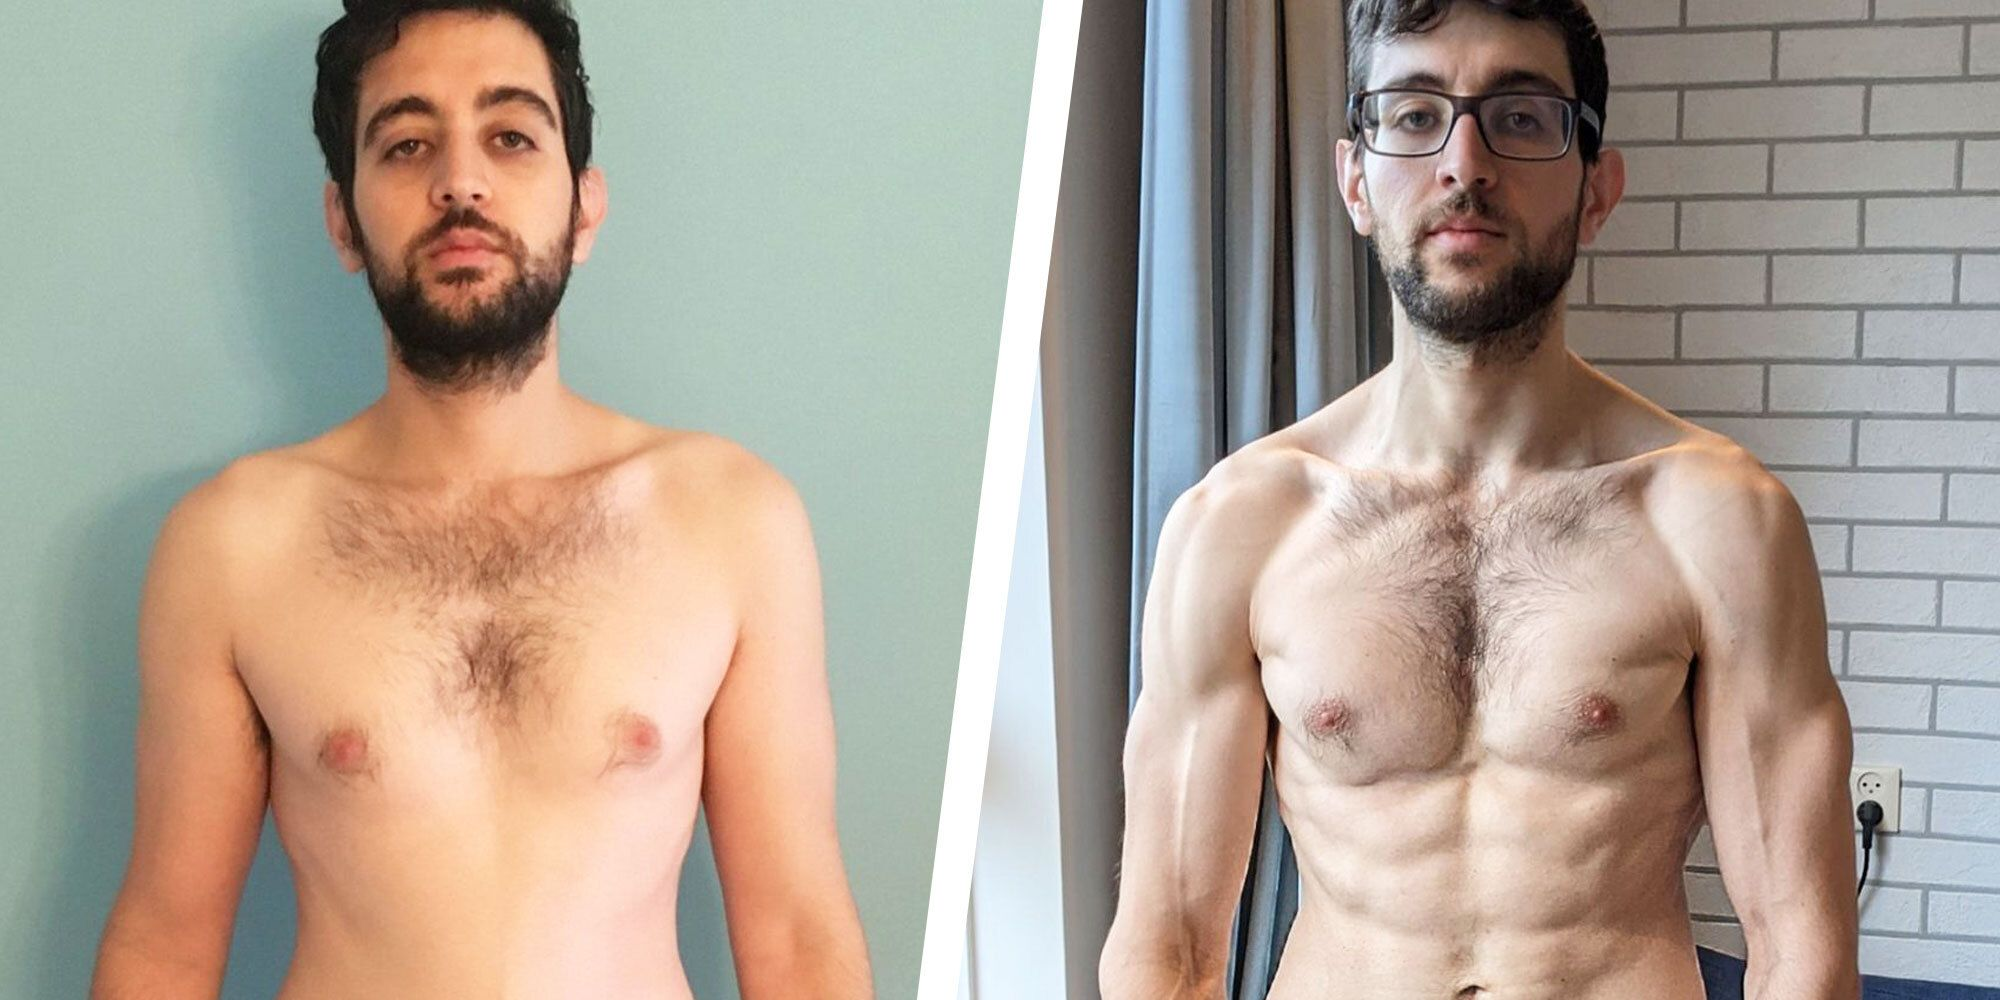 I Lost 20 Pounds and Got Ripped in 6 Months While Gyms Were Closed